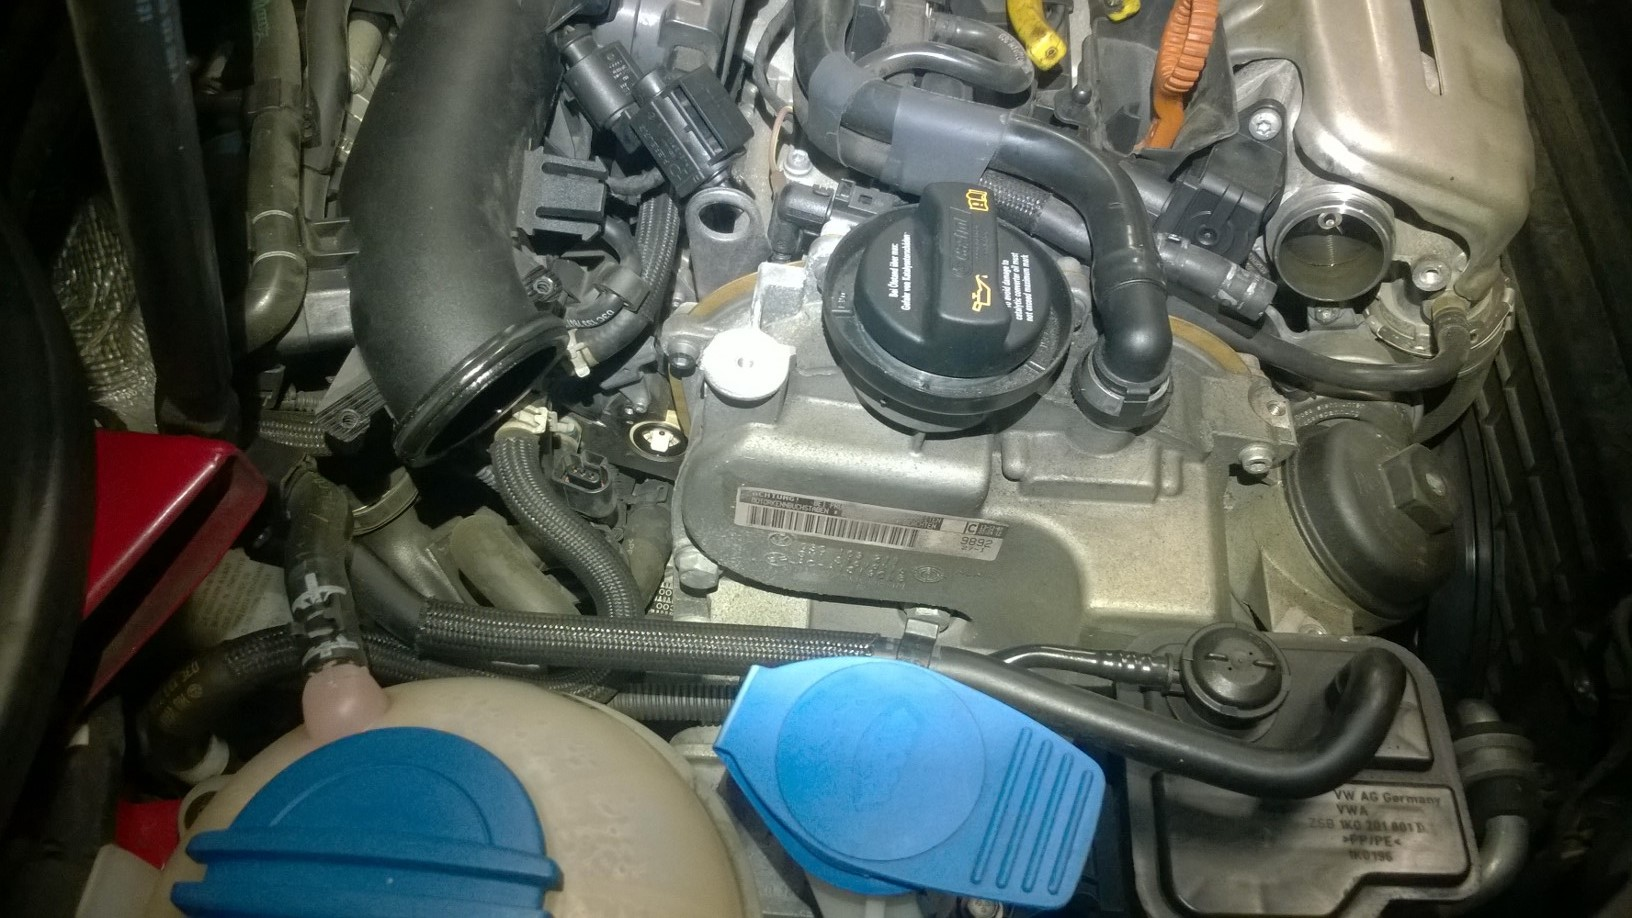 2008 VW golf intake flap sensor removed